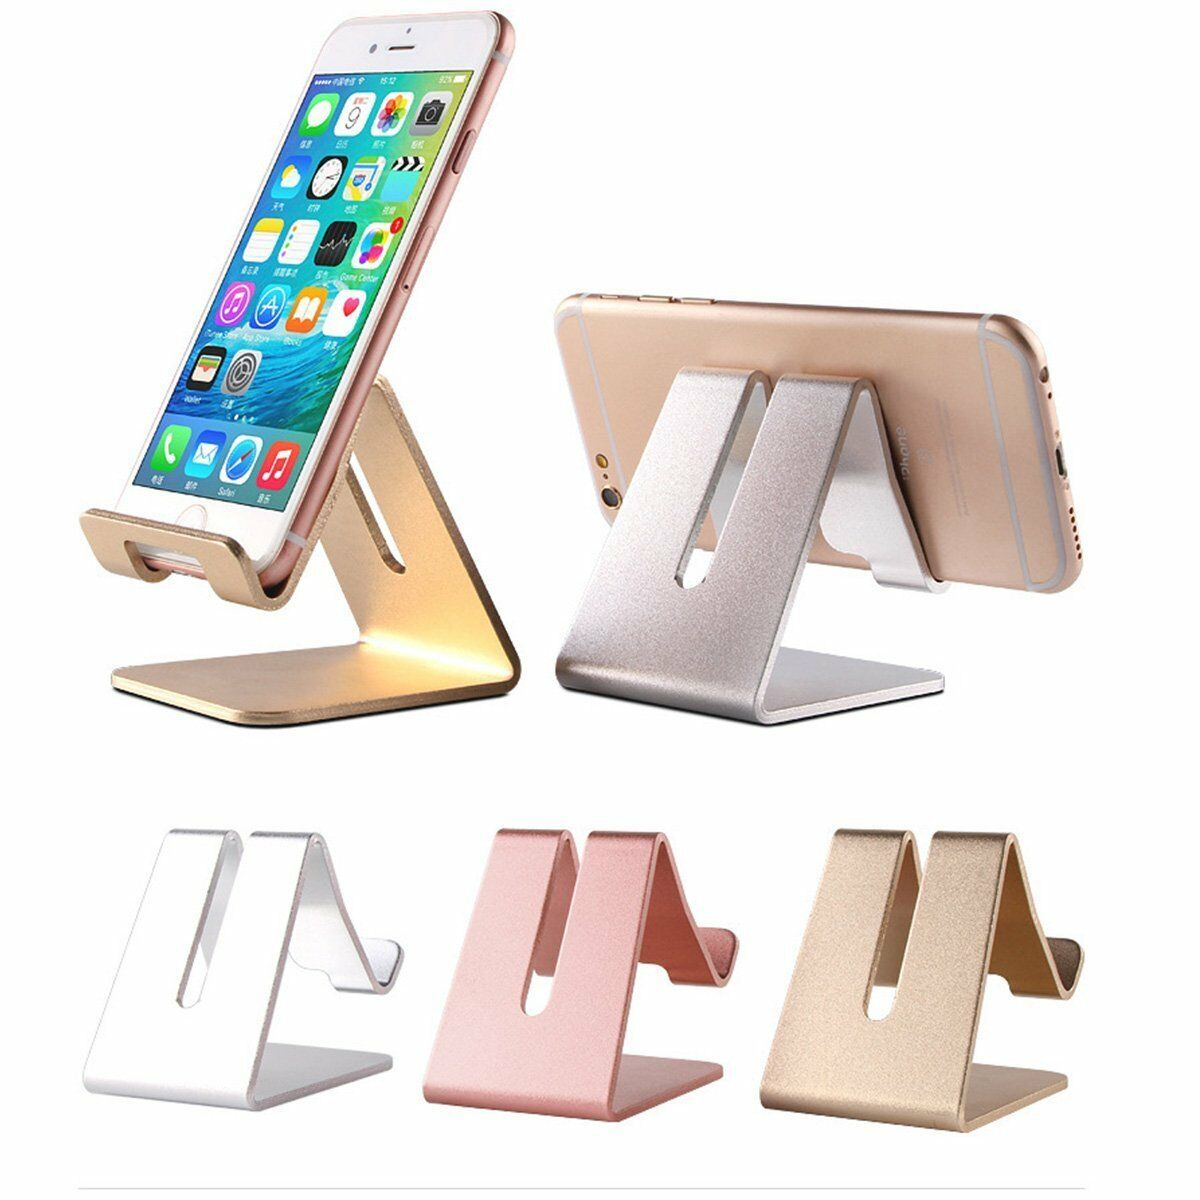 Universal Generic Aluminum Cell Phone Desk Stand Holder For Phone and Tablet New Cell Phone Accessories